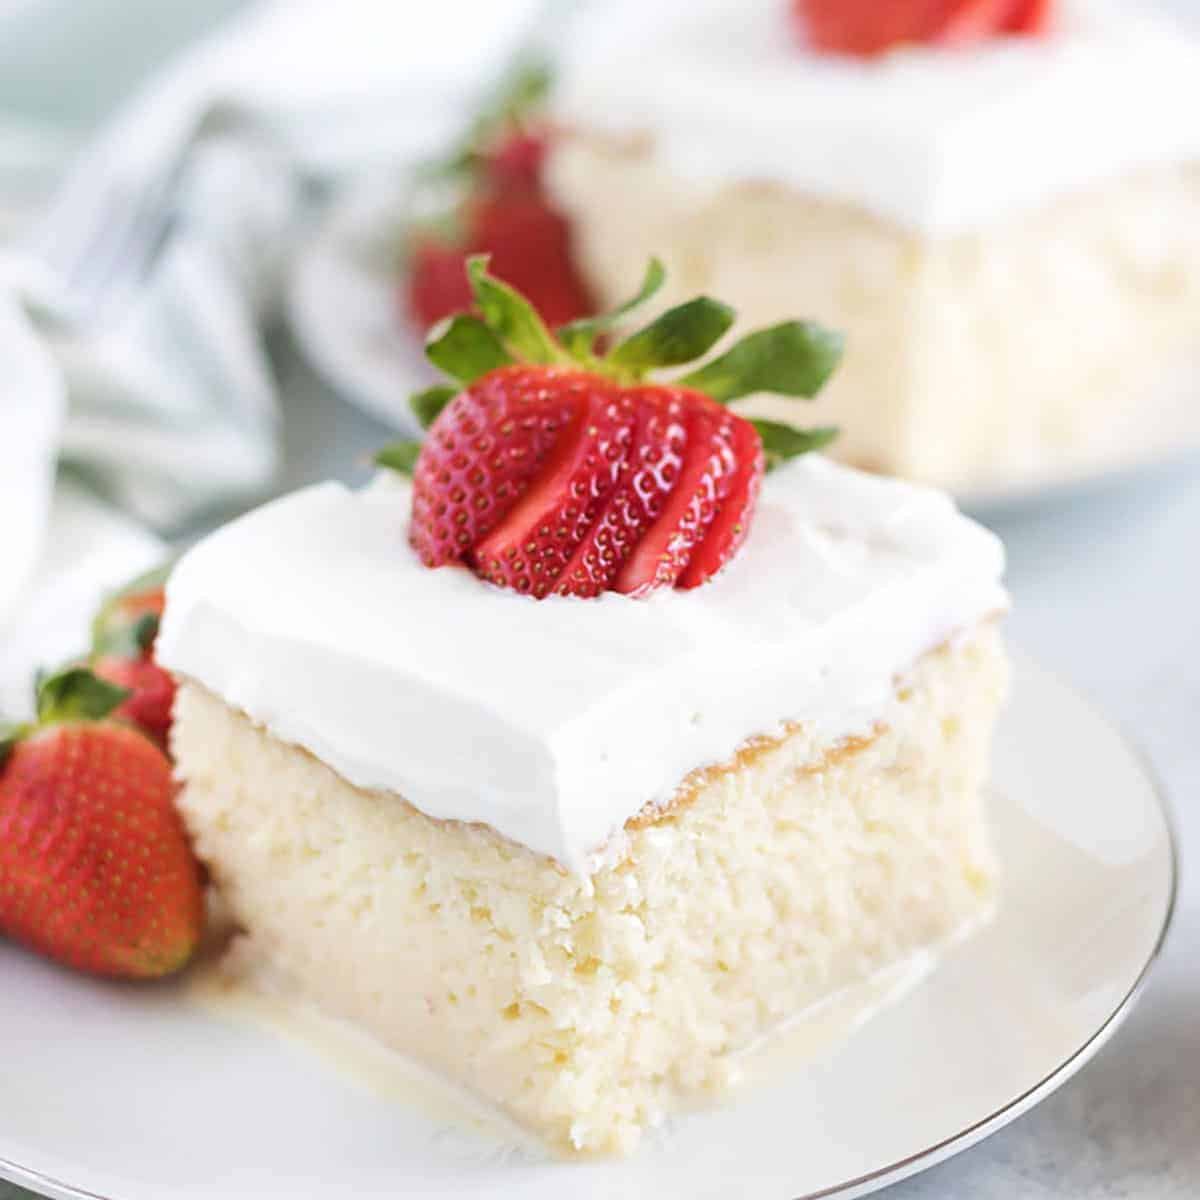 A slice of tres leches cake topped with strawberries on a plate.